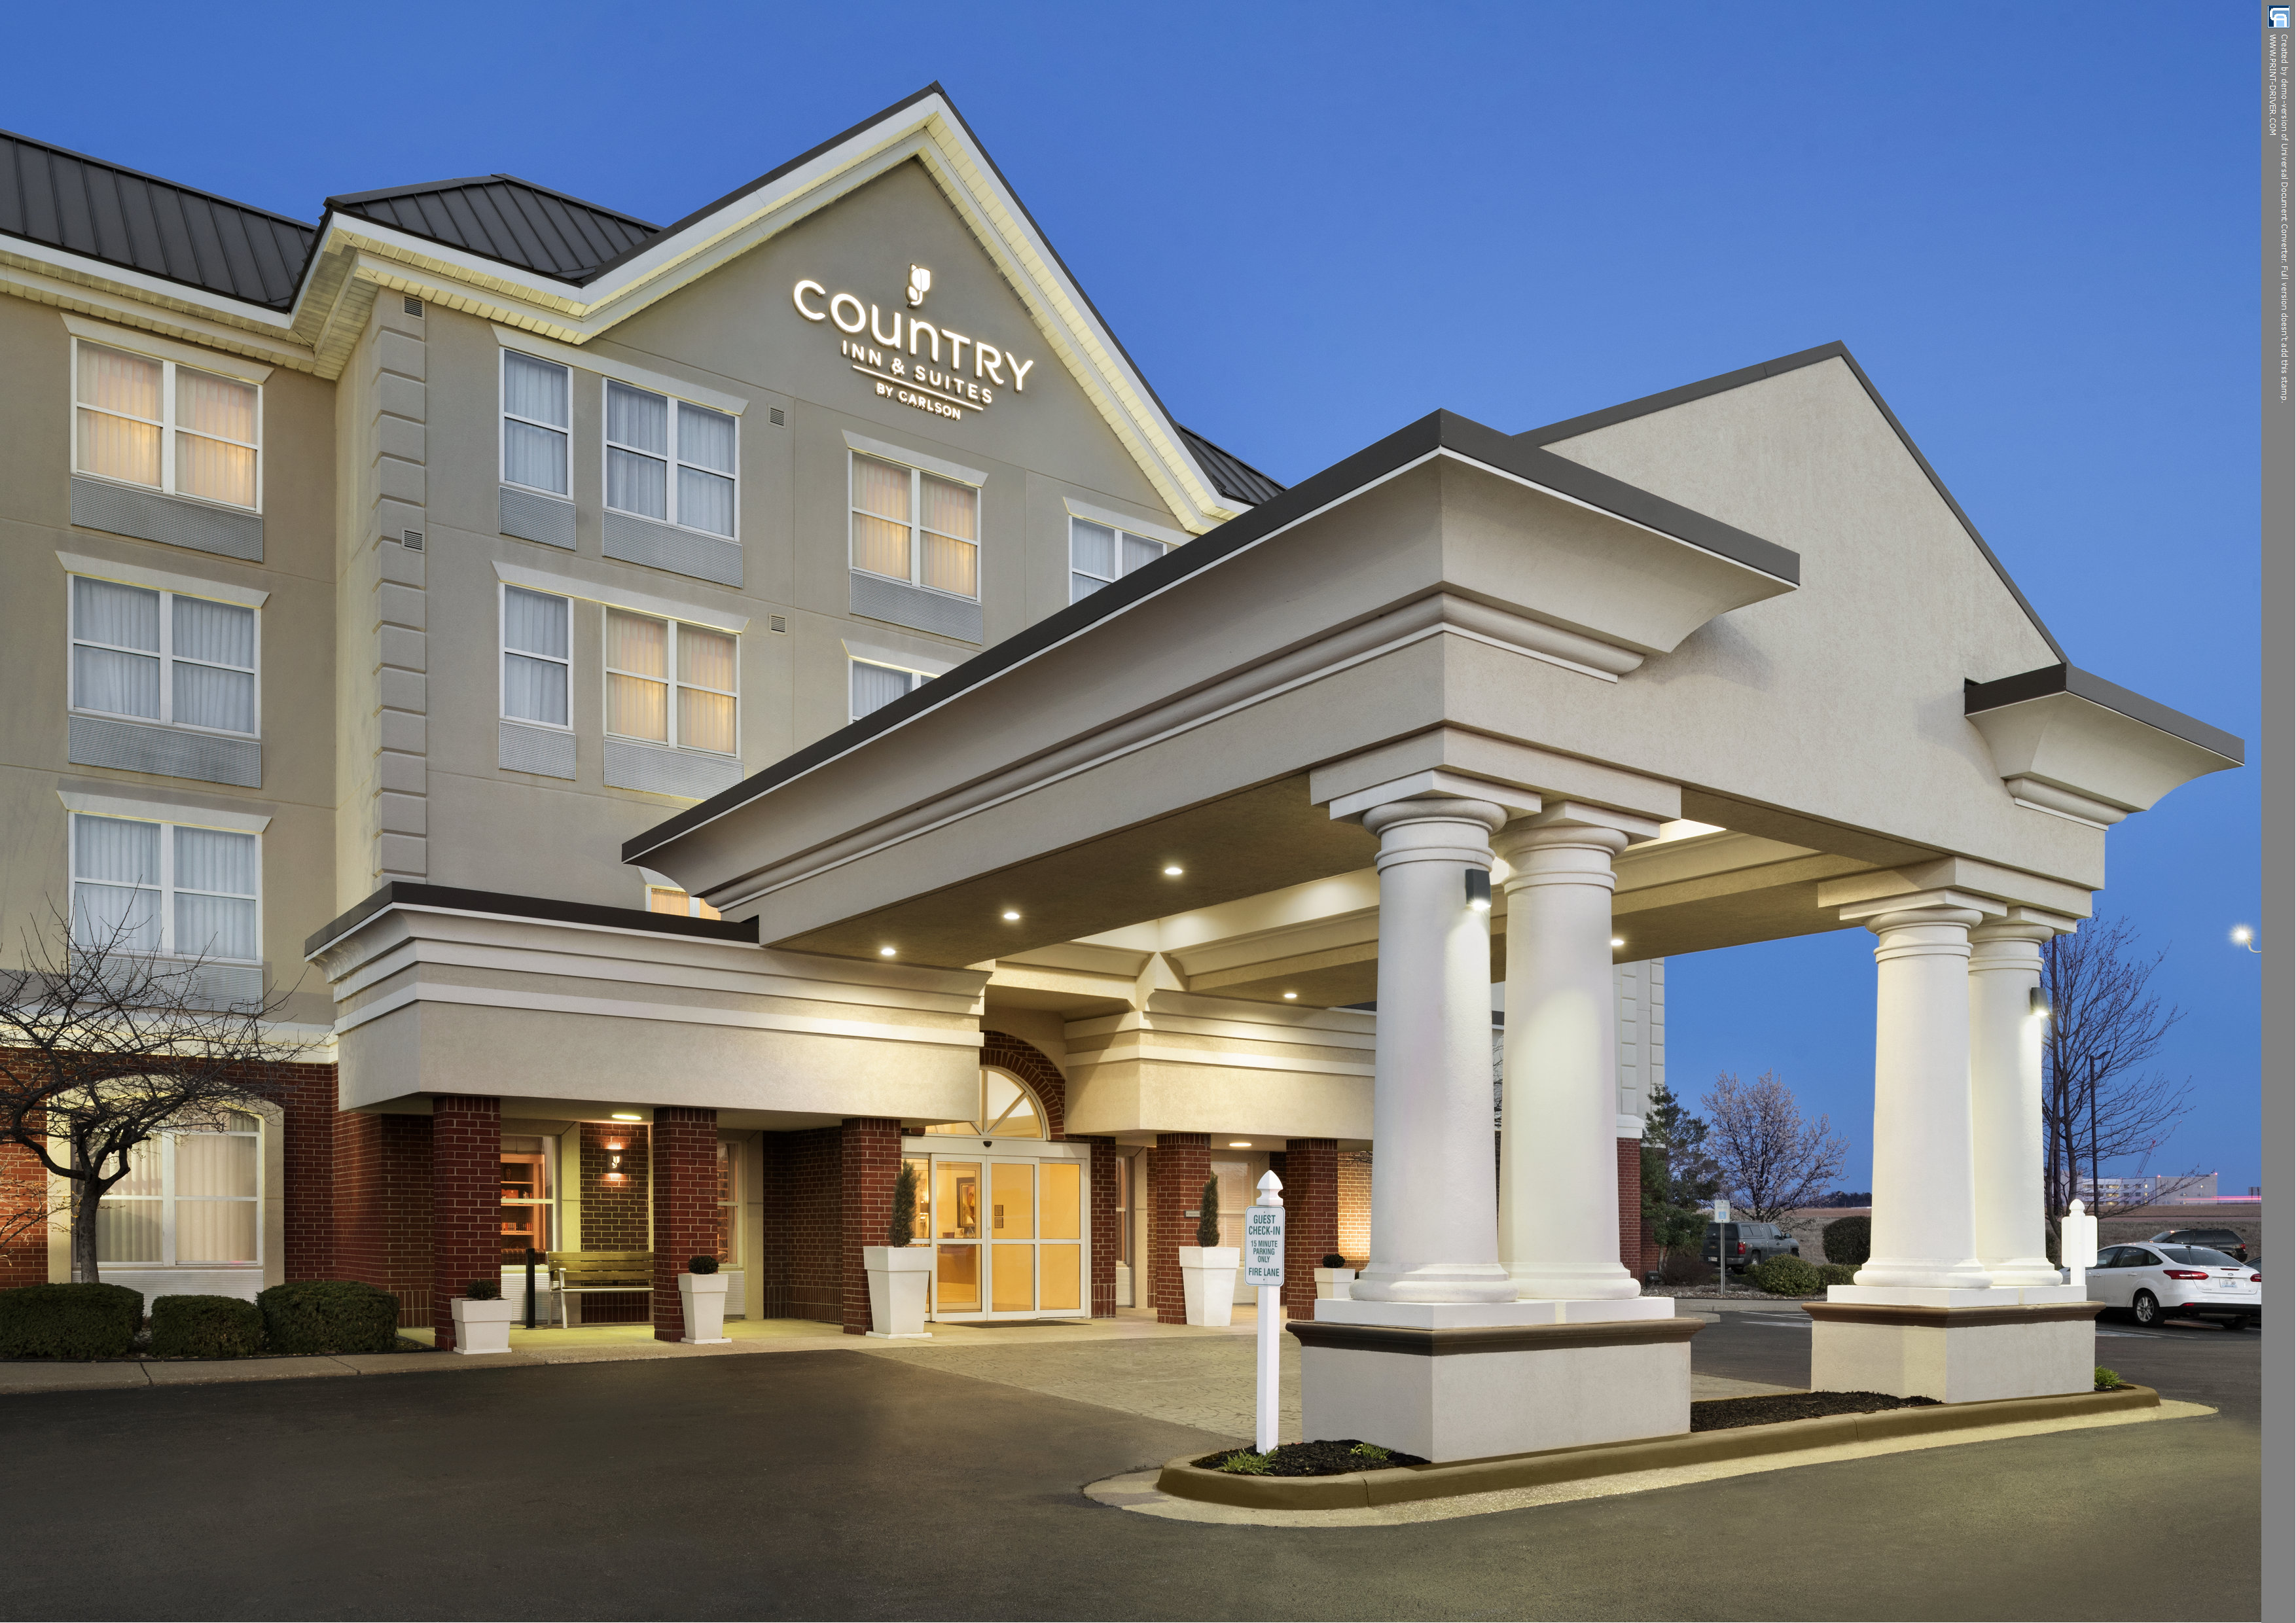 Country Inn & Suites by Radisson, Evansville, IN image 0